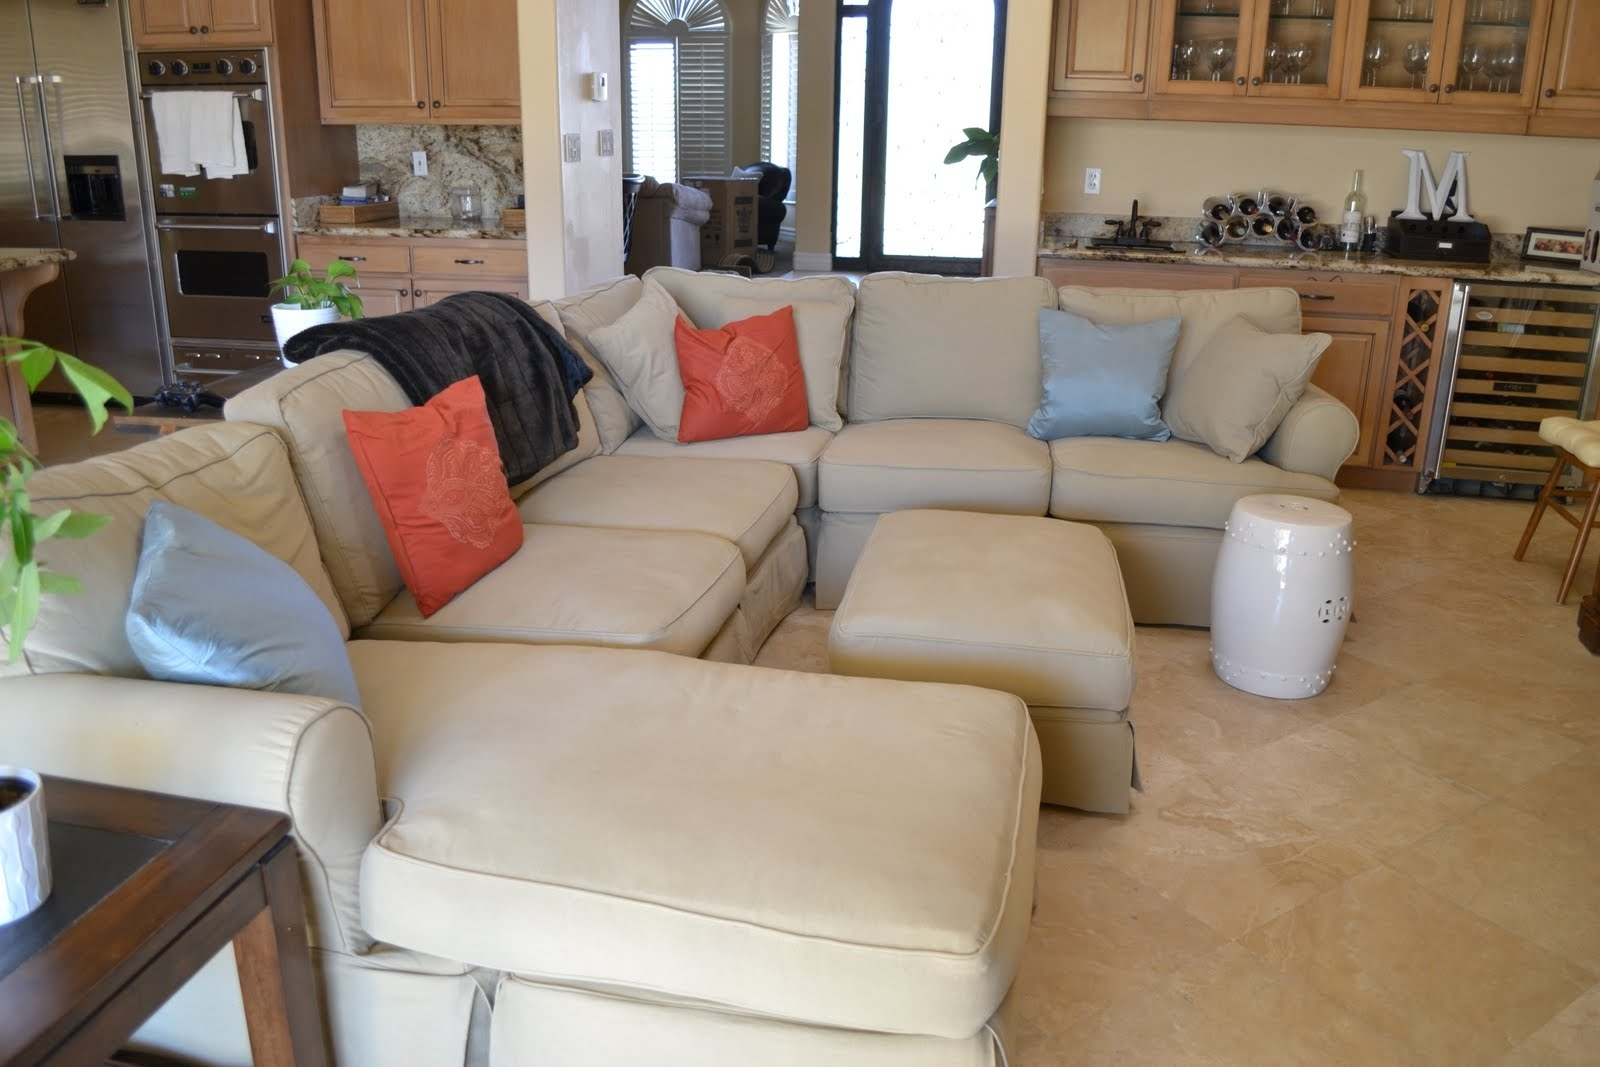 Well Known Slipcover Sectional Sofas With Chaise Inside 3 Piece Sectional Slipcovers — Cabinets, Beds, Sofas And (View 14 of 15)